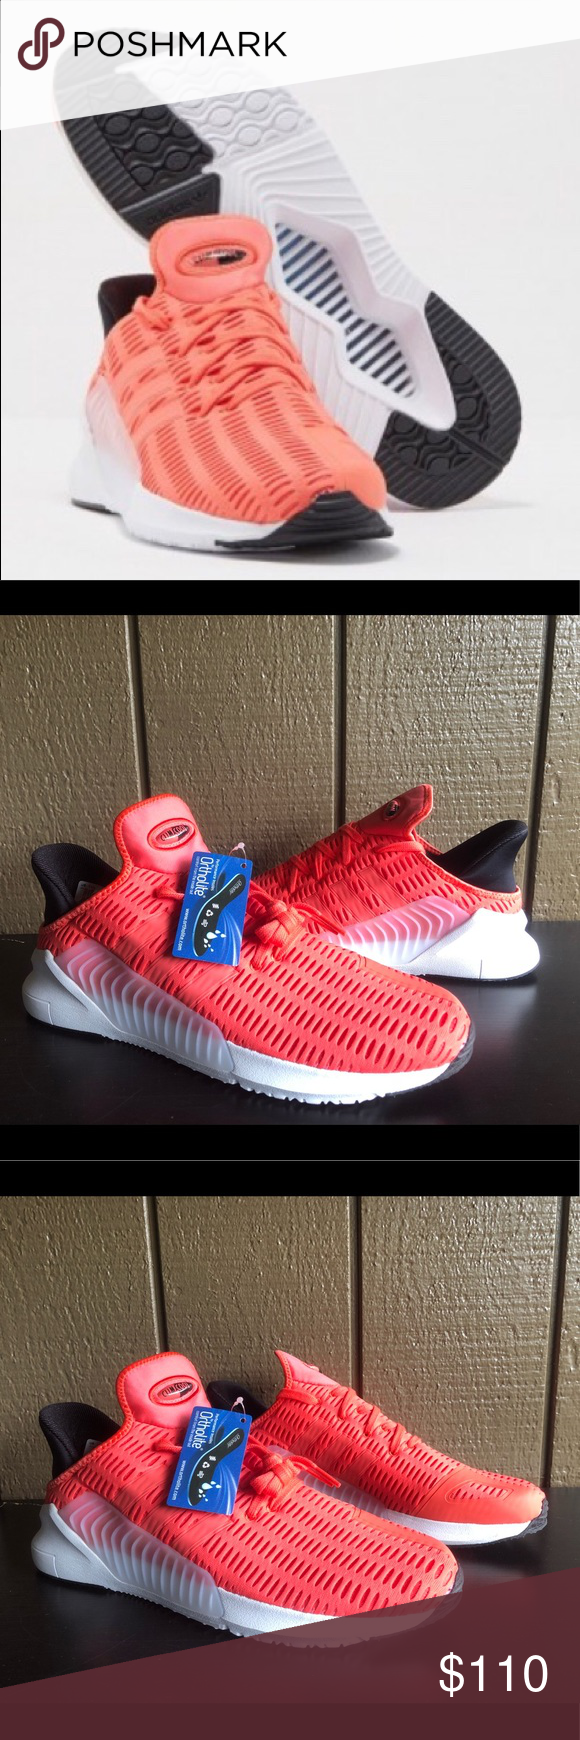 buy online 1811f 72986 Adidas Climacool 02/17 Easy Coral Men's Shoes 11.5 Adidas Climacool 02/17  Easy